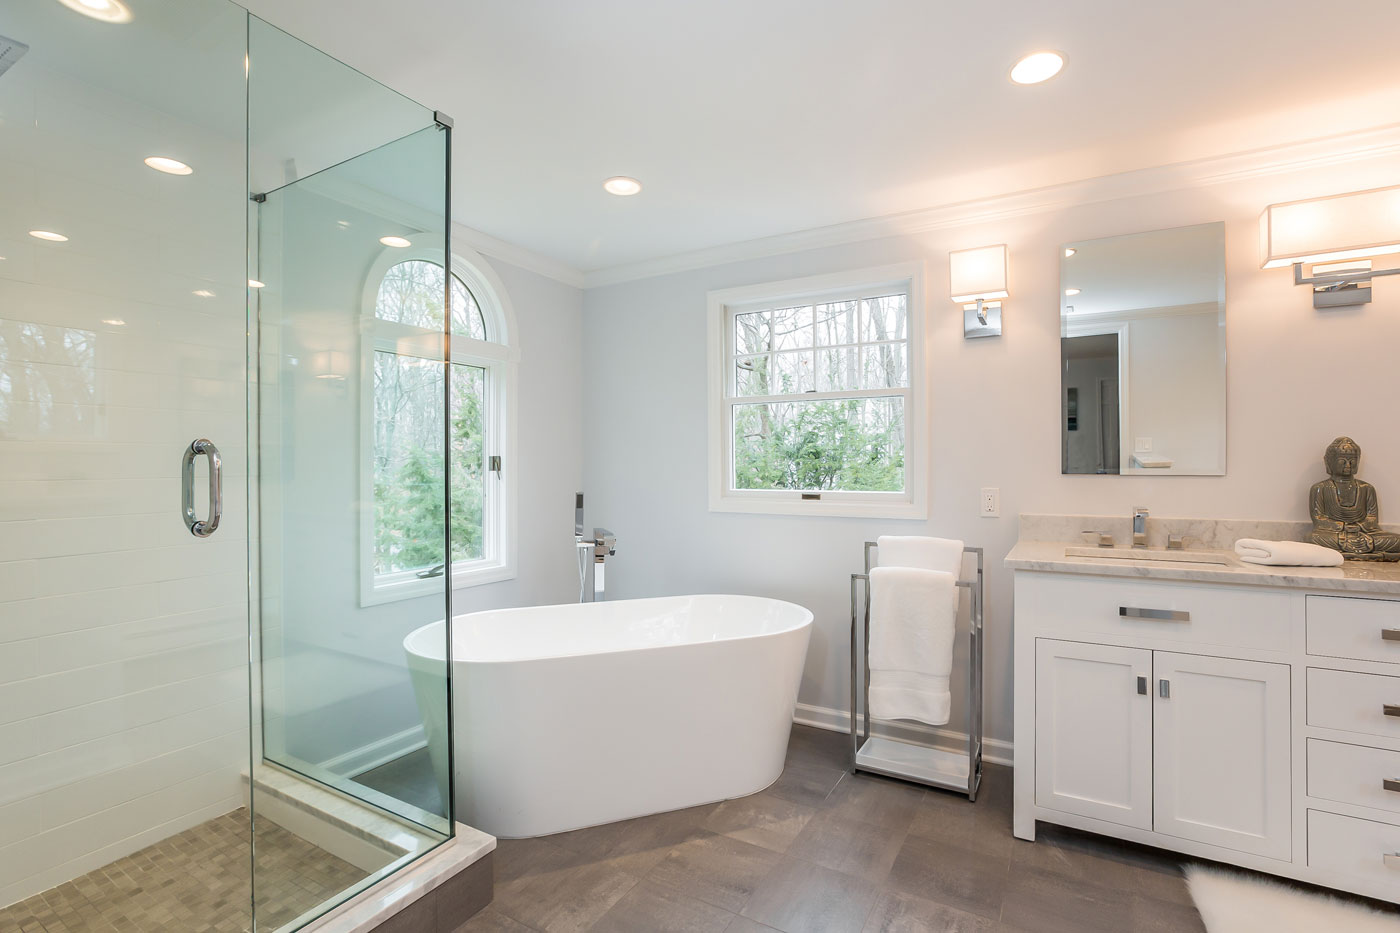 maria-matluck-bathroom-designer-in-westport-connecticut-1